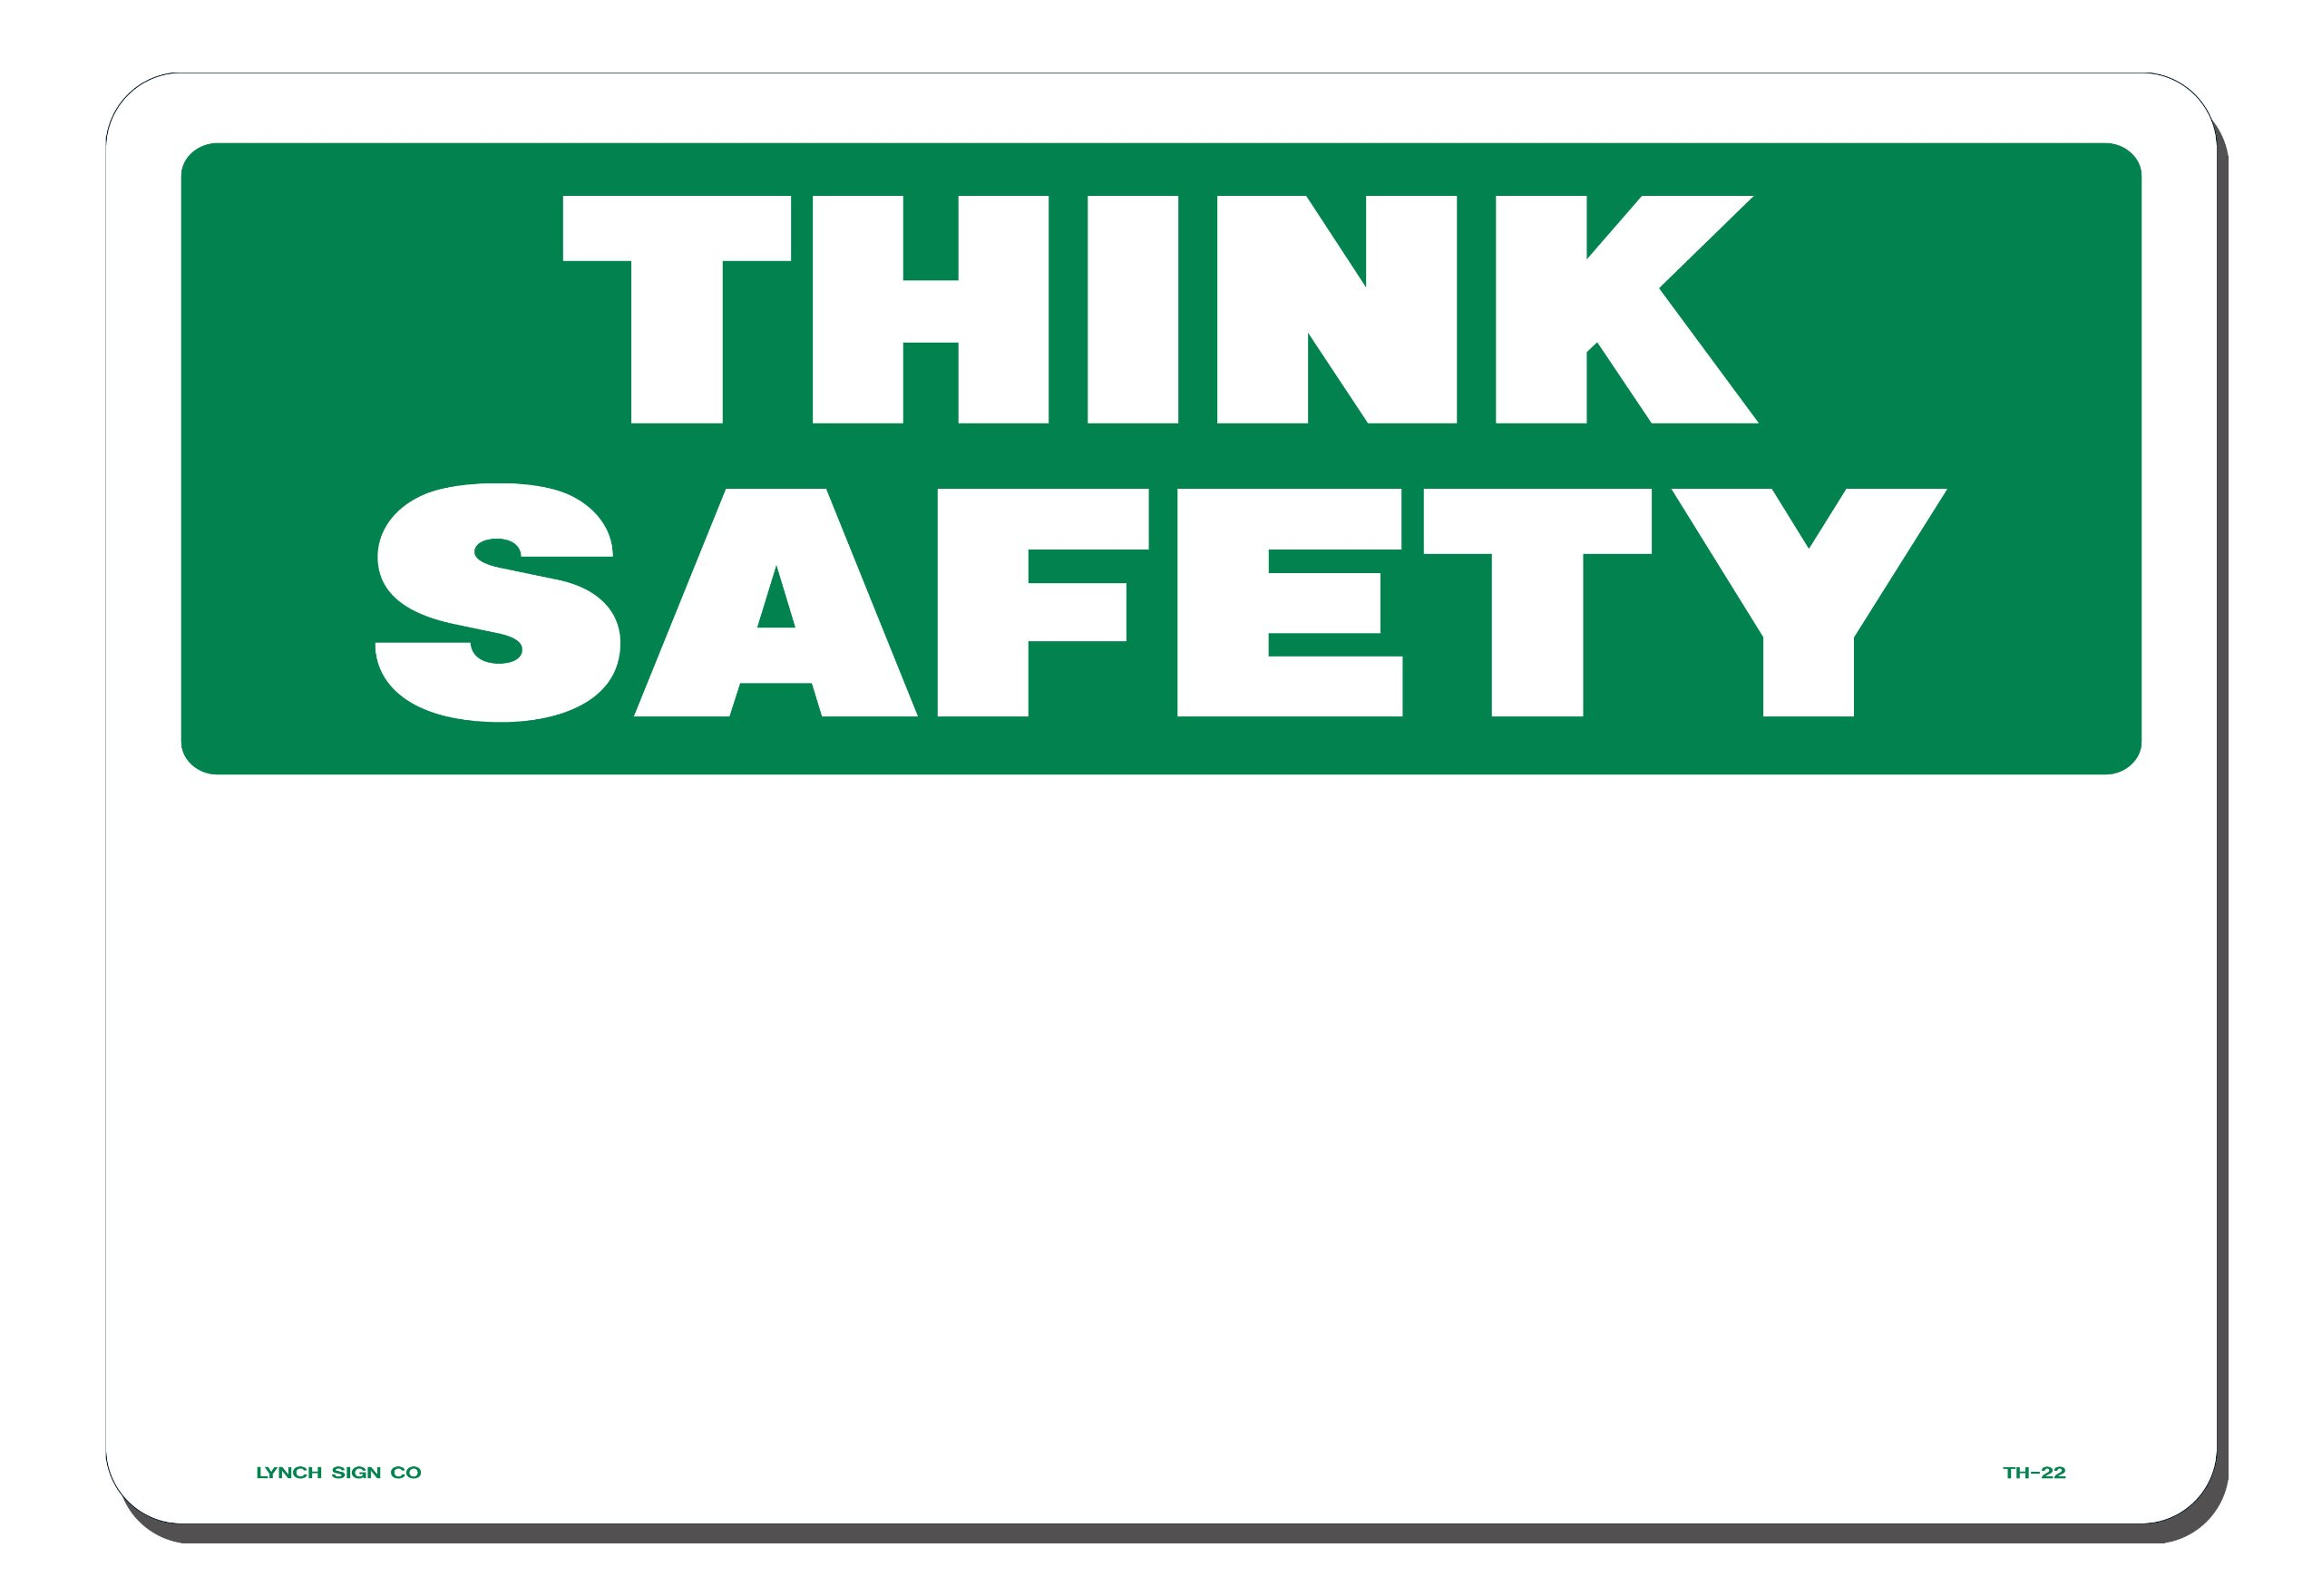 Lynch Signs 14 in. x 10 in. Sign Green on White Plastic Think Safety